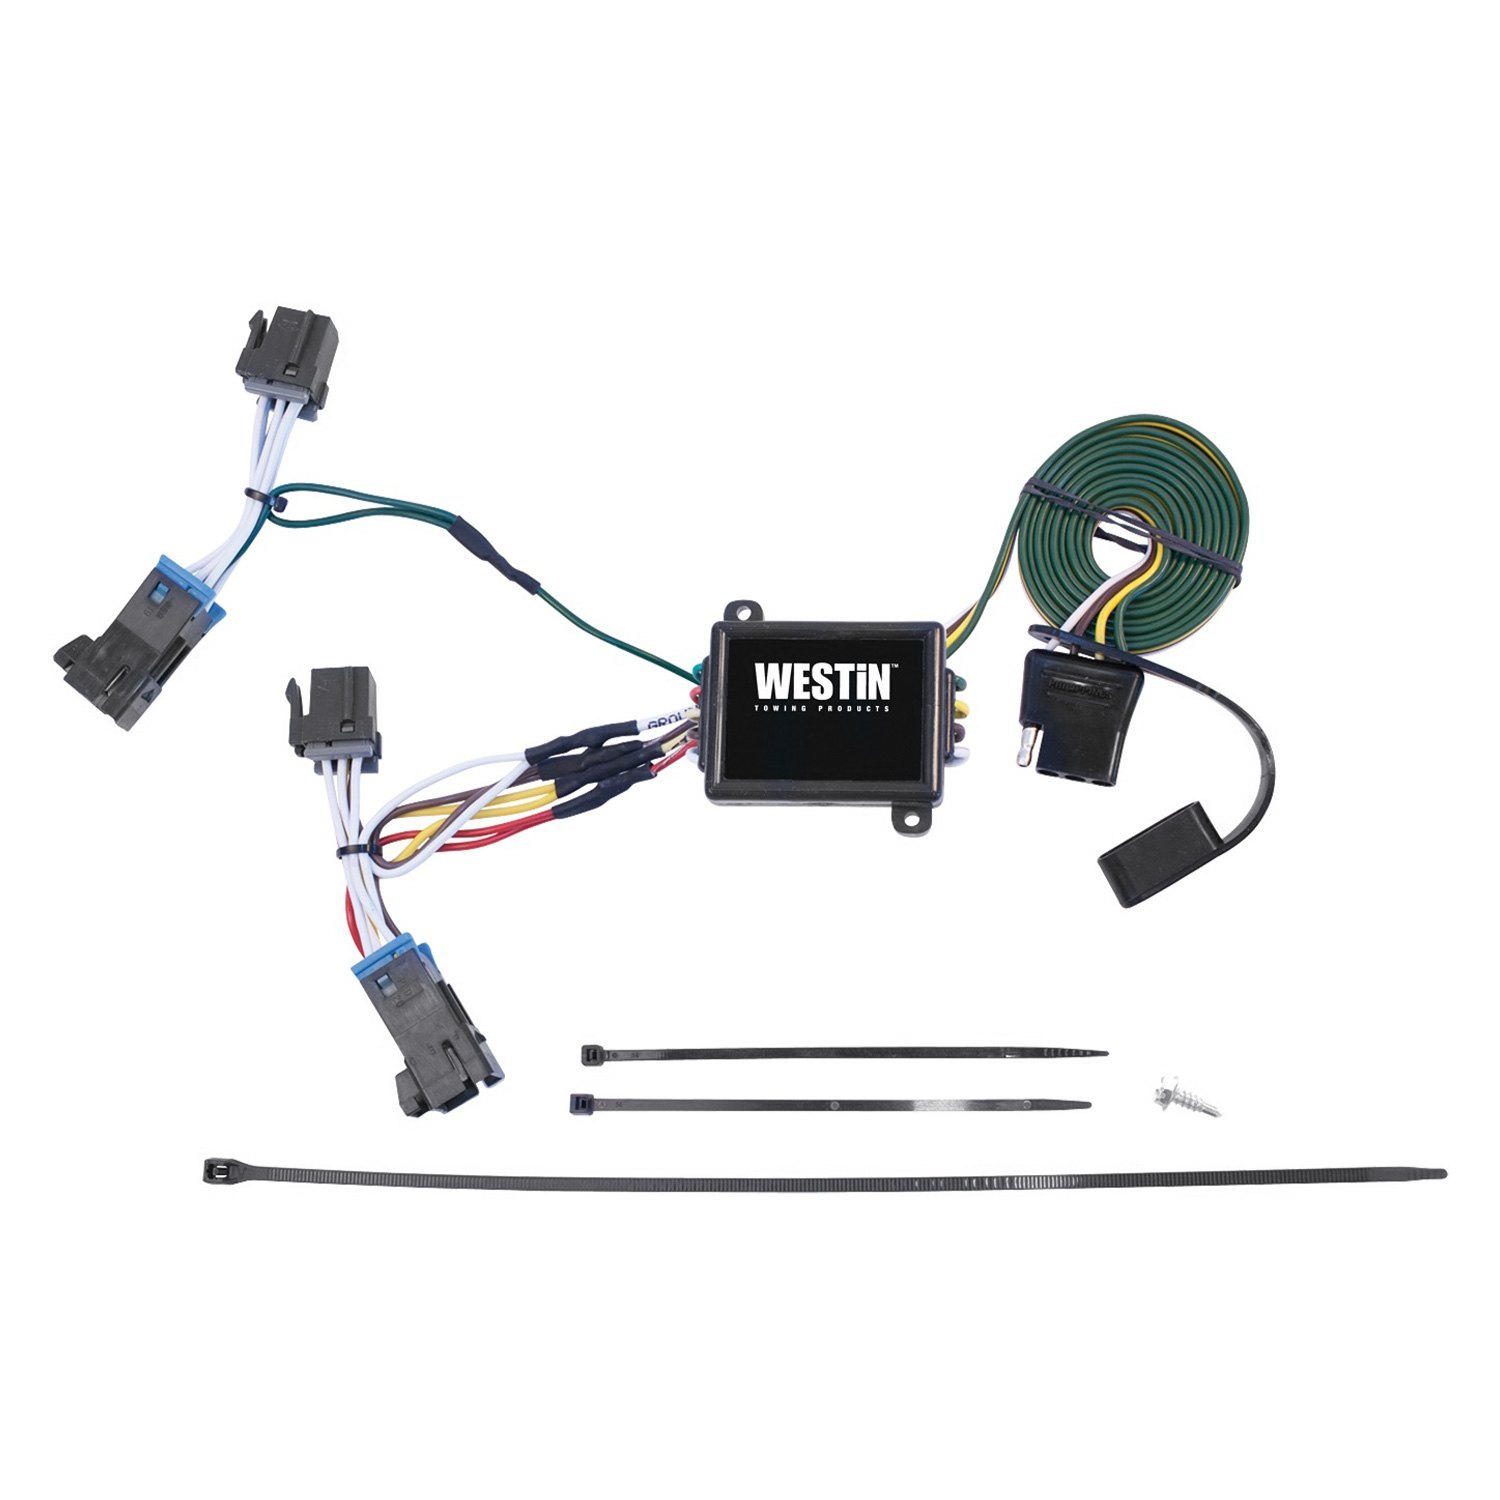 westin 65 60042 towing wiring harness. Black Bedroom Furniture Sets. Home Design Ideas